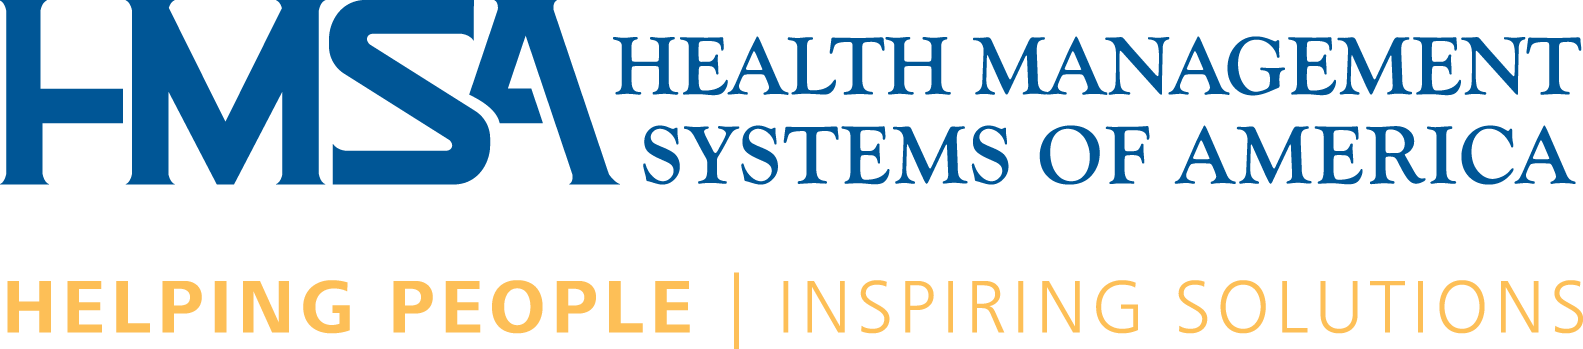 Health Management Systems of America (HMSA)